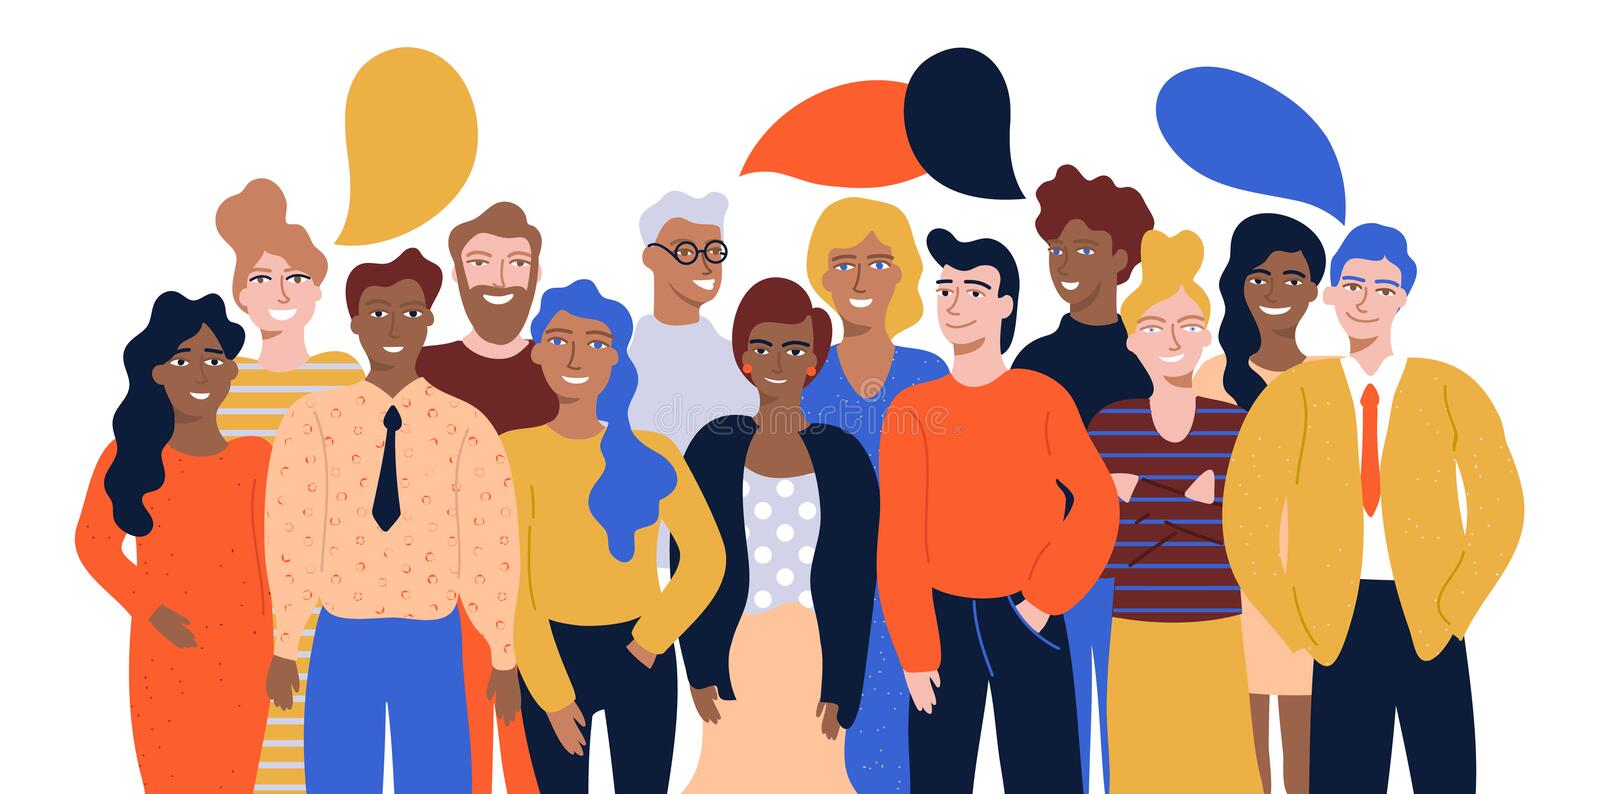 Colorful vector illustration in flat cartoon style group portrait of funny smiling office workers or clerks standing together vector illustration